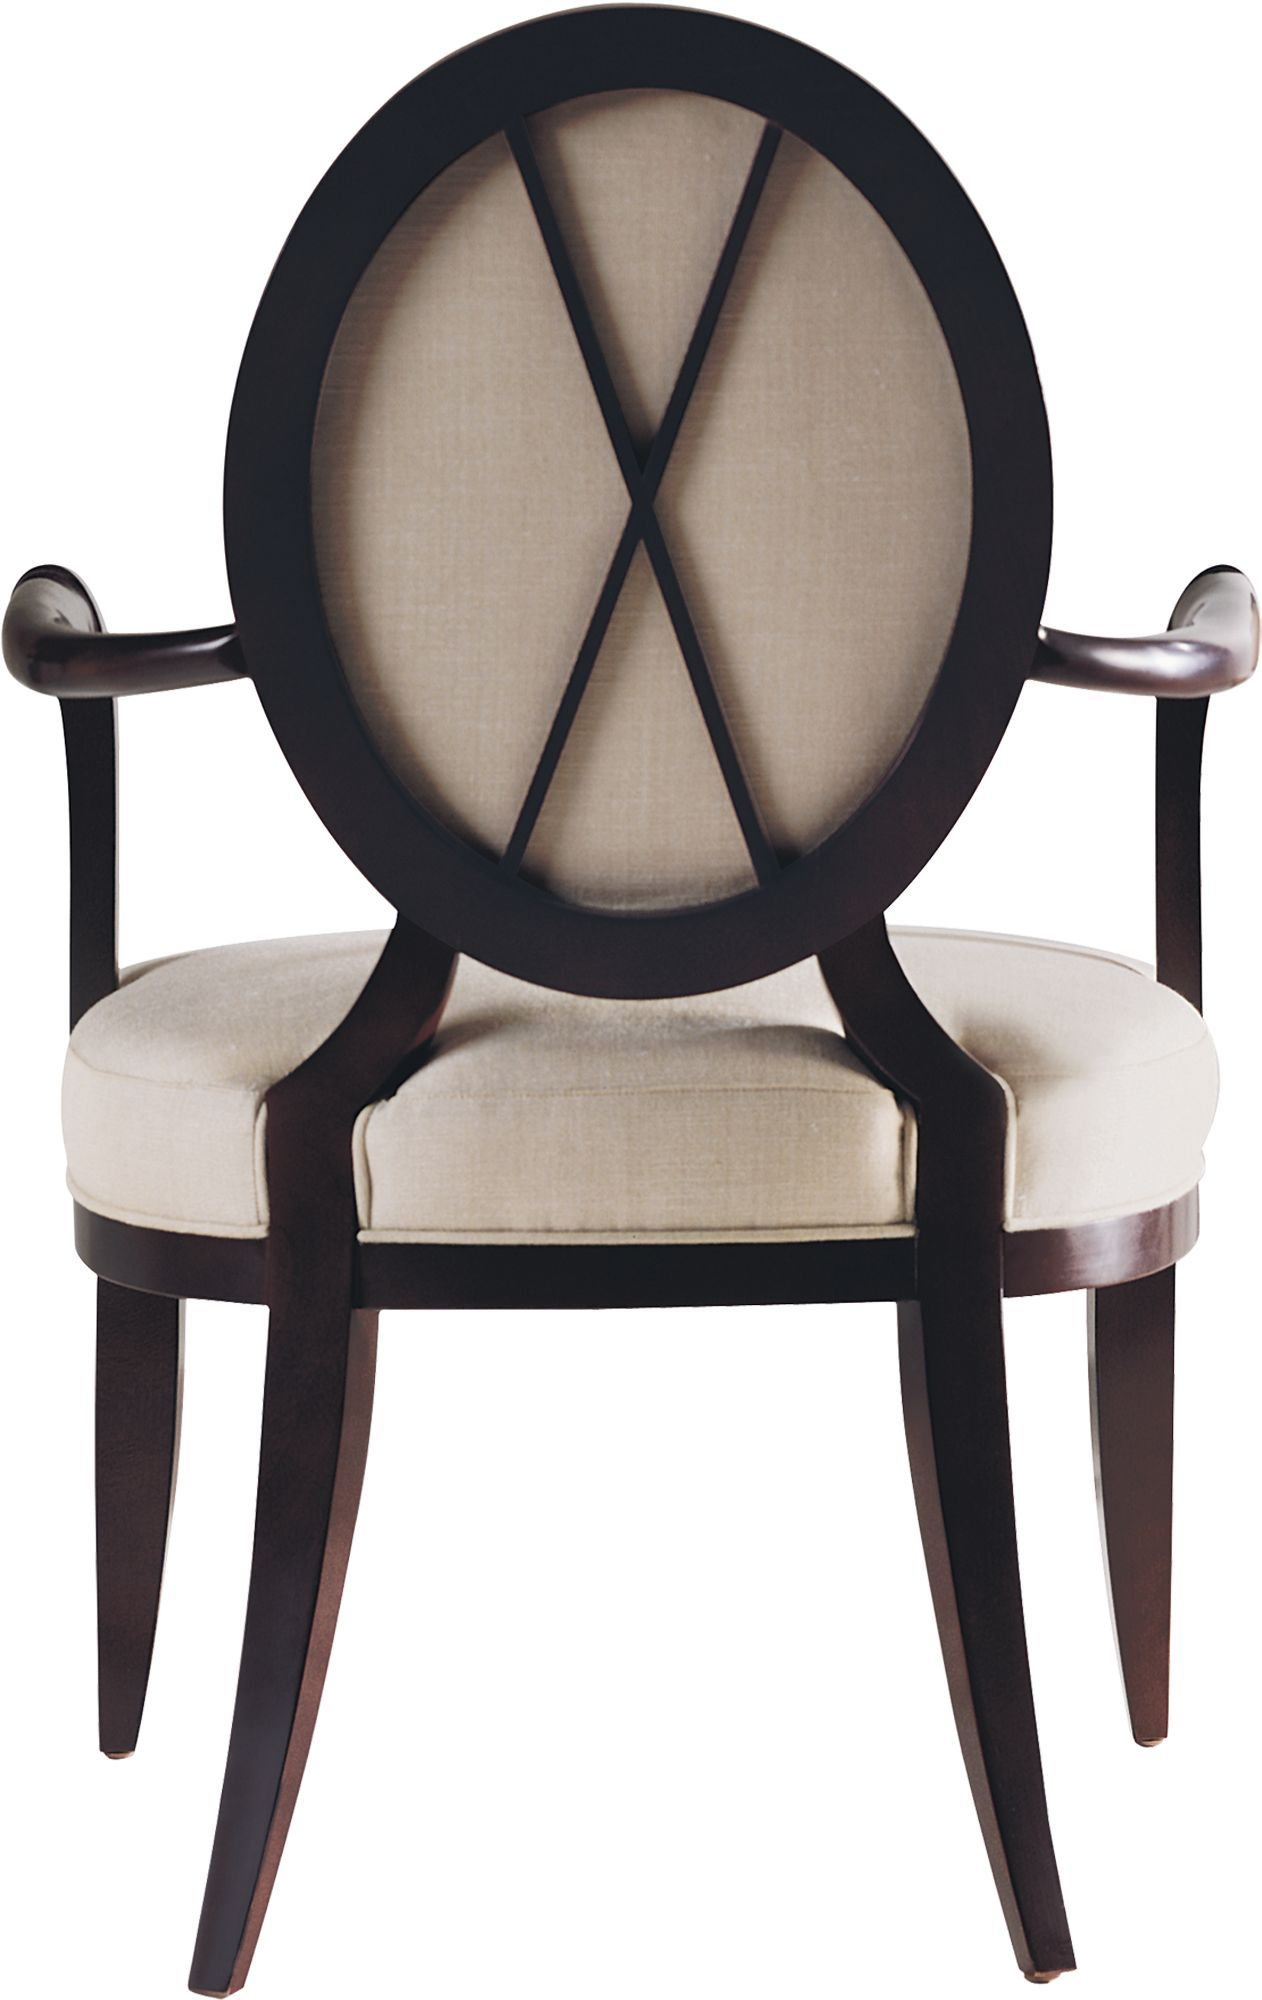 Shop for Baker Oval X Back Dining Arm Chair 3441 and other